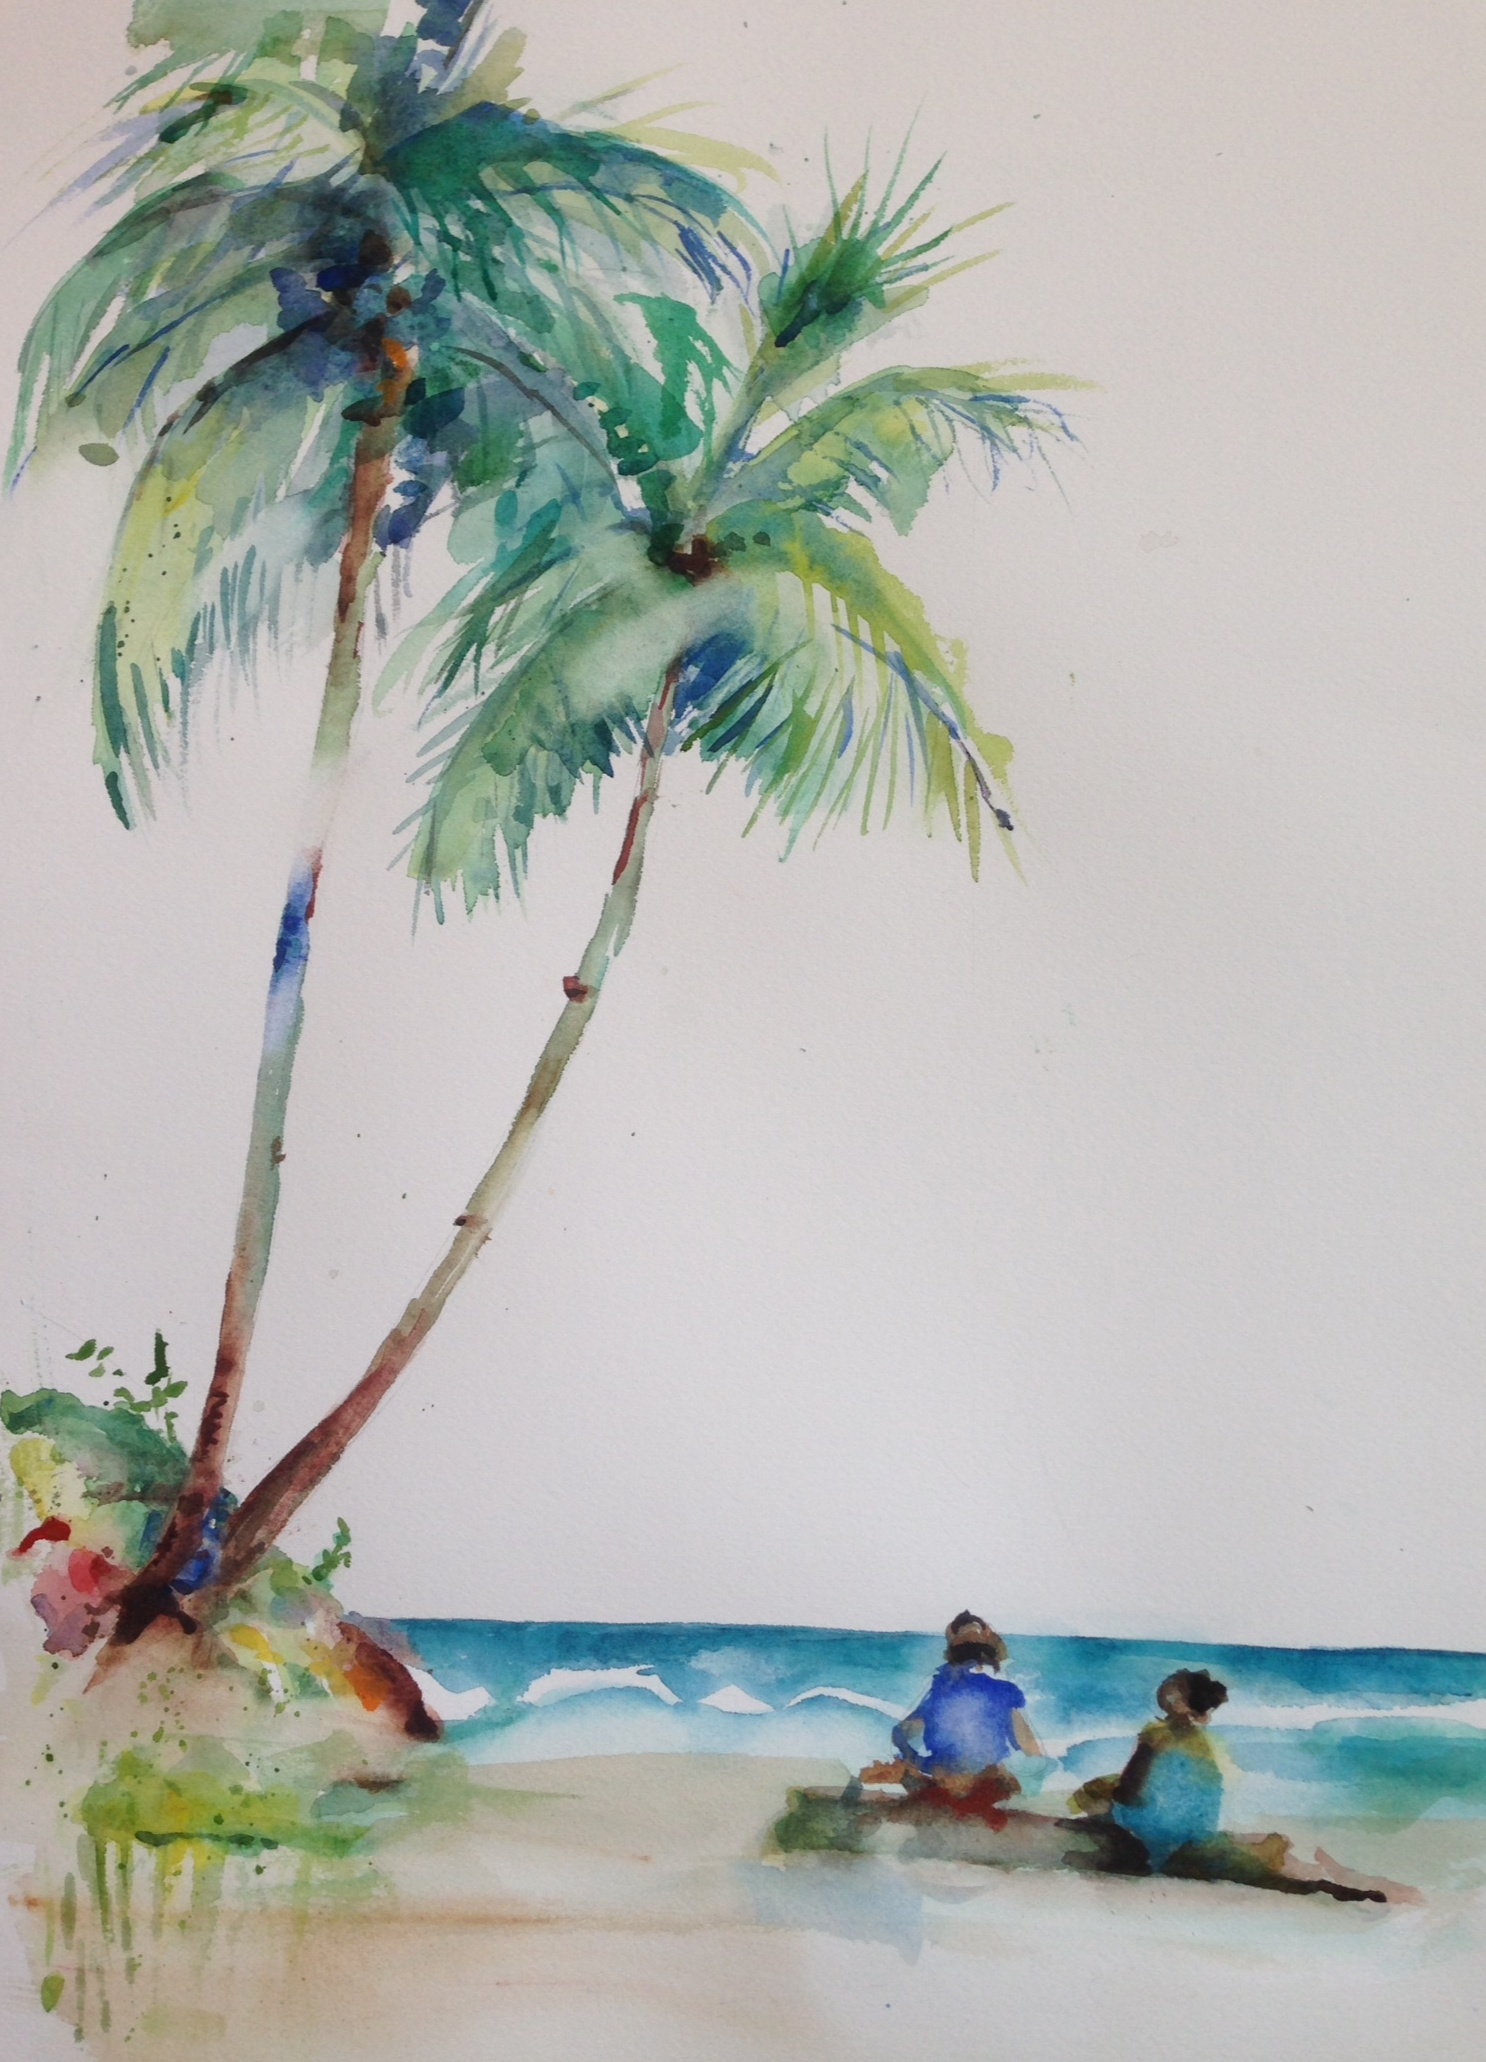 Drawn palm tree watercolor painting Palms watercolor Carol King: painting